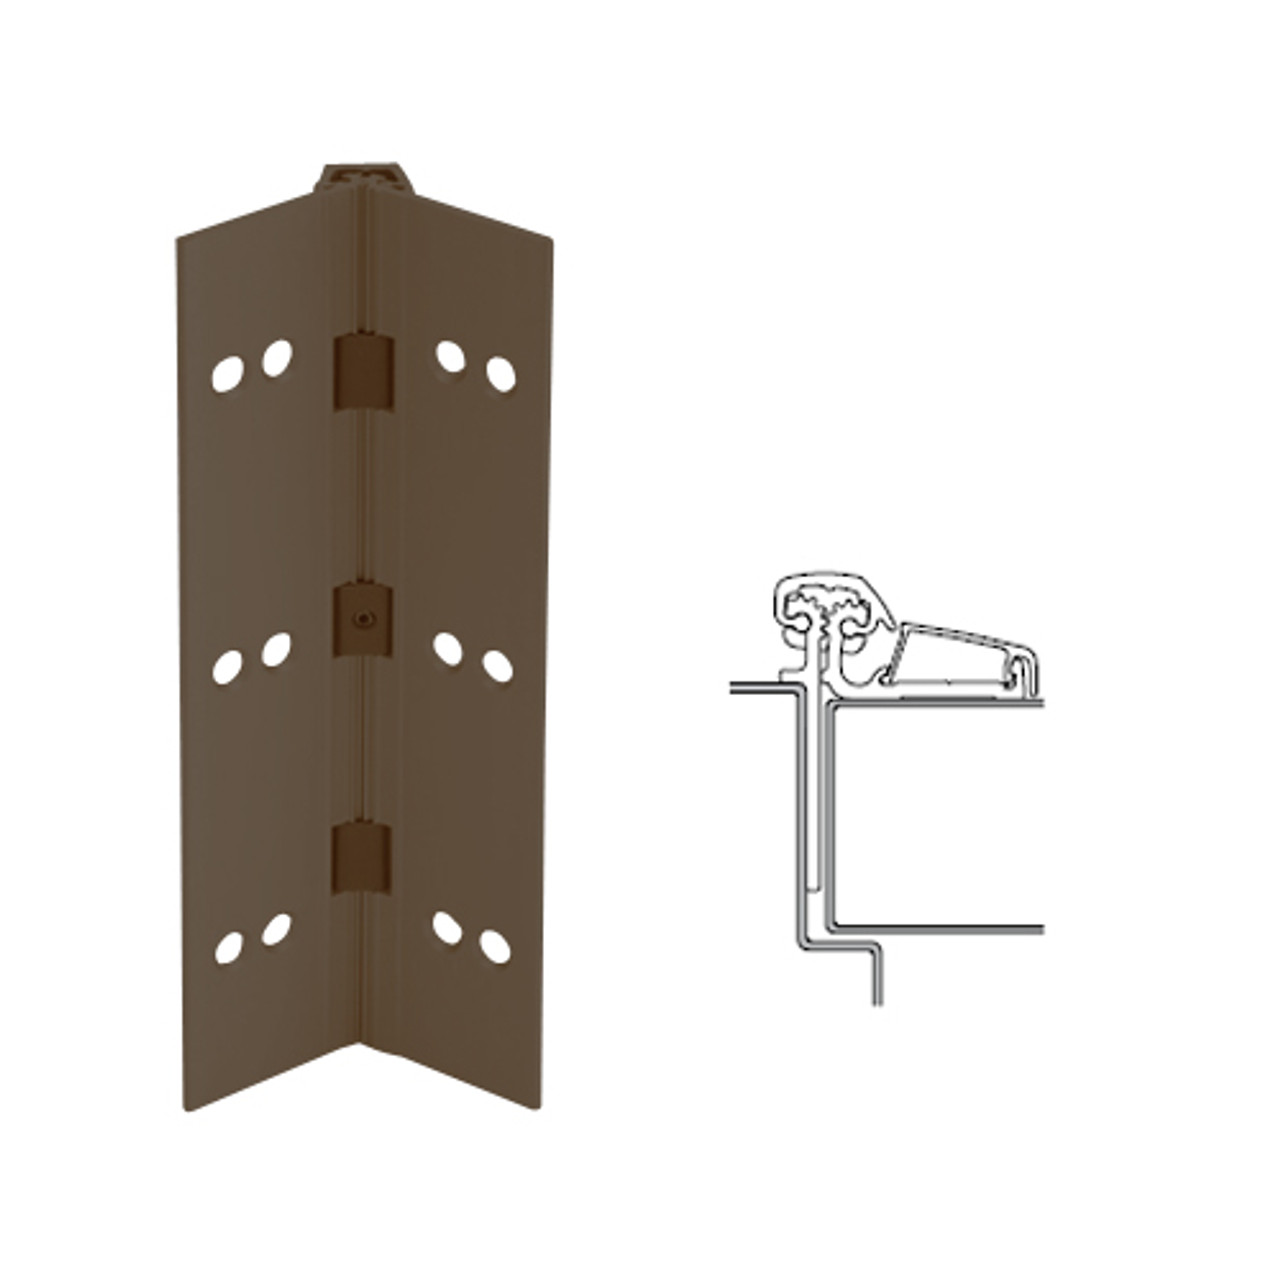 053XY-313AN-120-SECWDHM IVES Adjustable Half Surface Continuous Geared Hinges with Security Screws - Hex Pin Drive in Dark Bronze Anodized